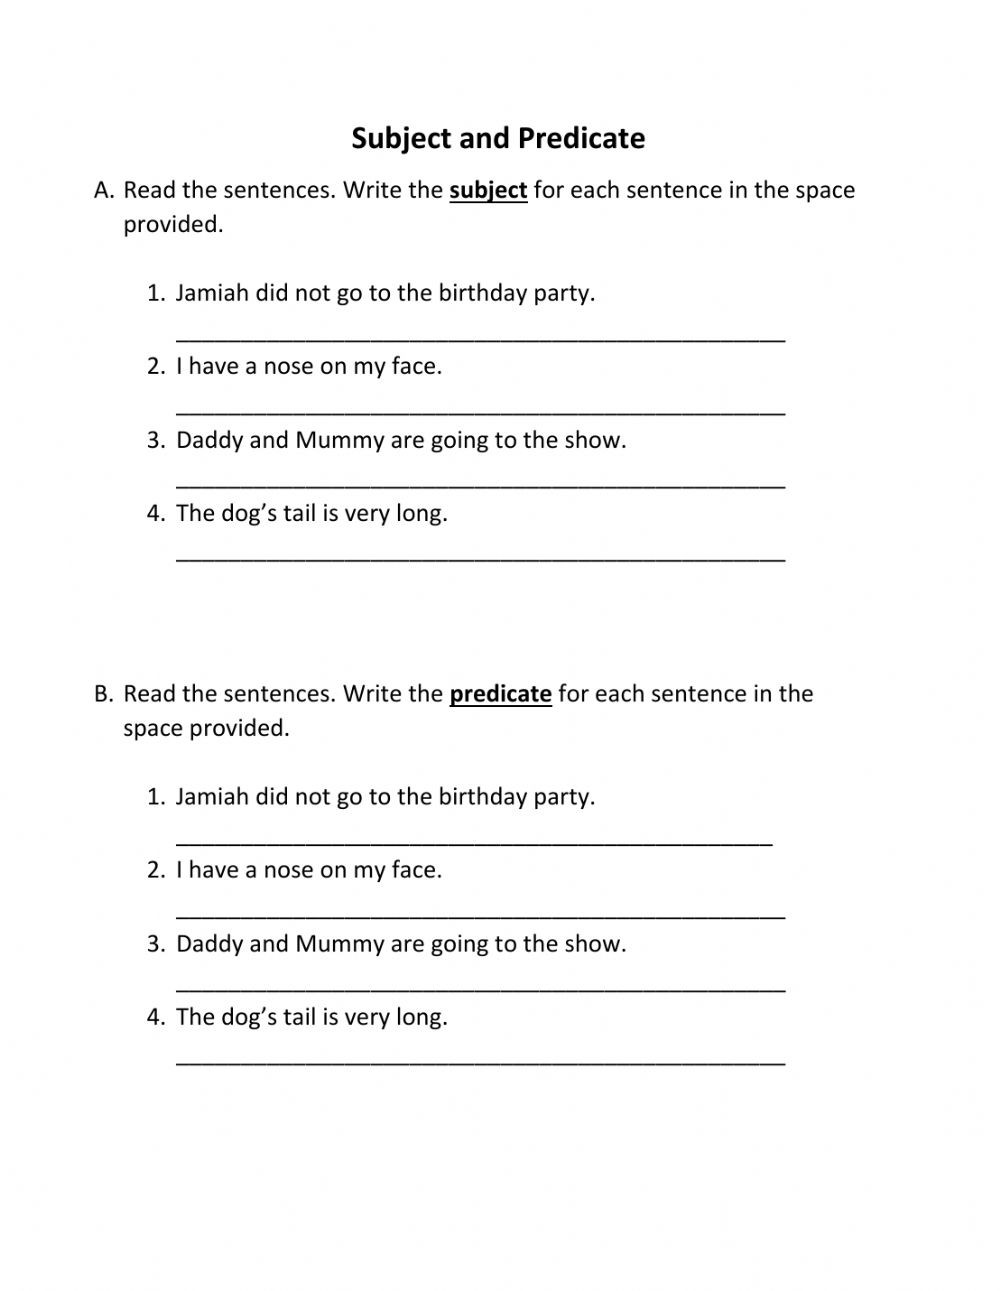 Subject Predicate Worksheet Pdf Subject and Predicate Interactive Worksheet